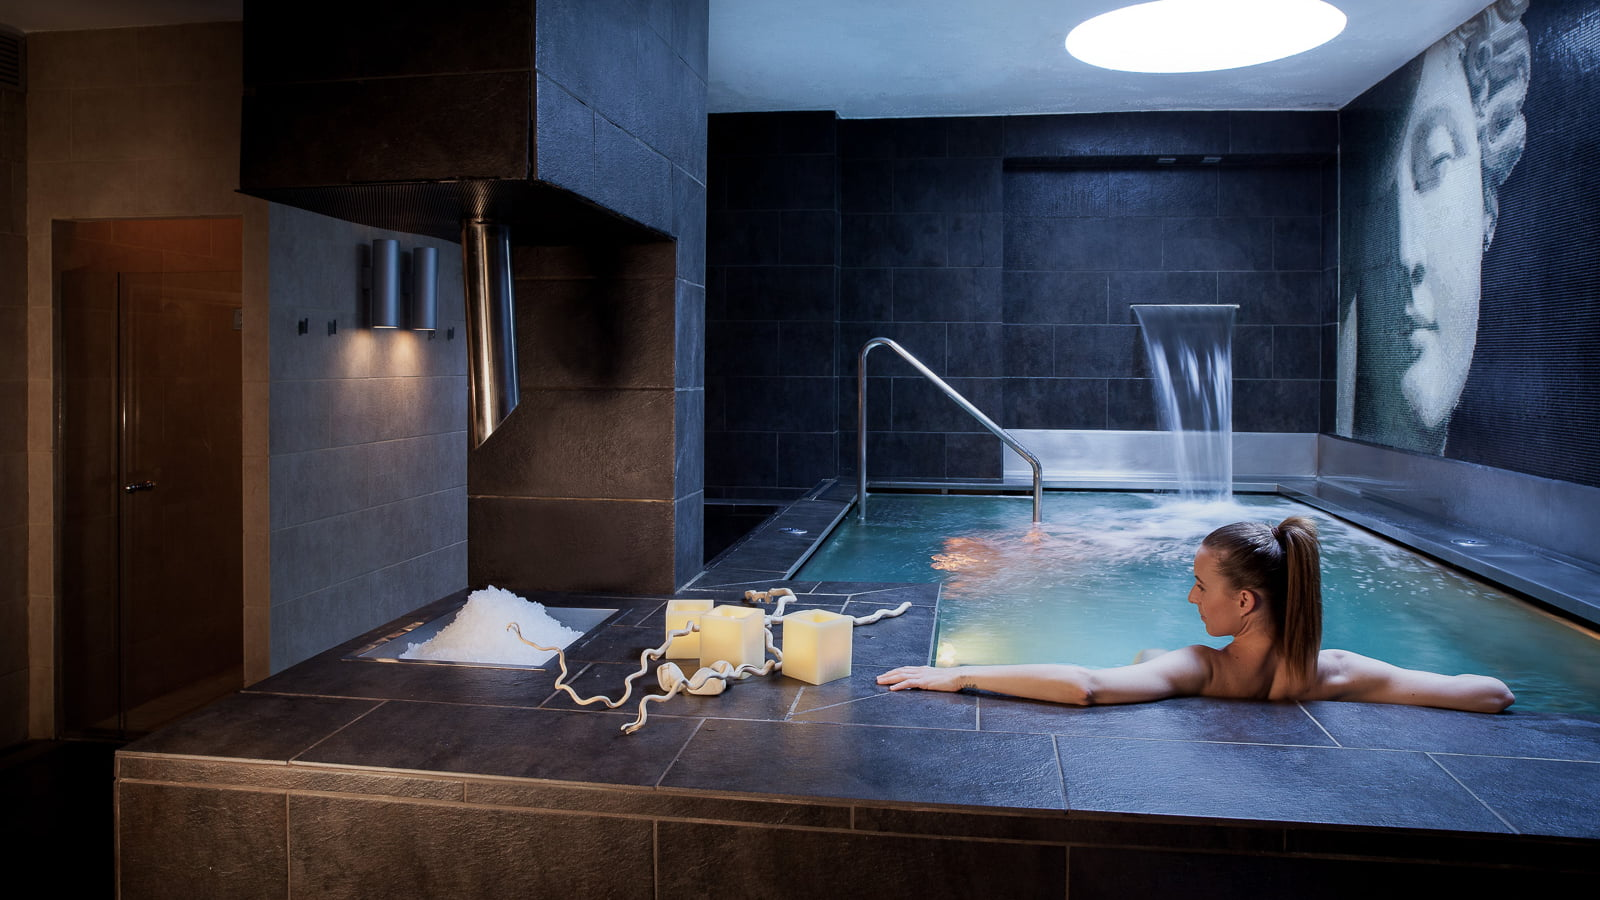 Spa del hotel wellington de madrid for Viajes a madrid con hotel